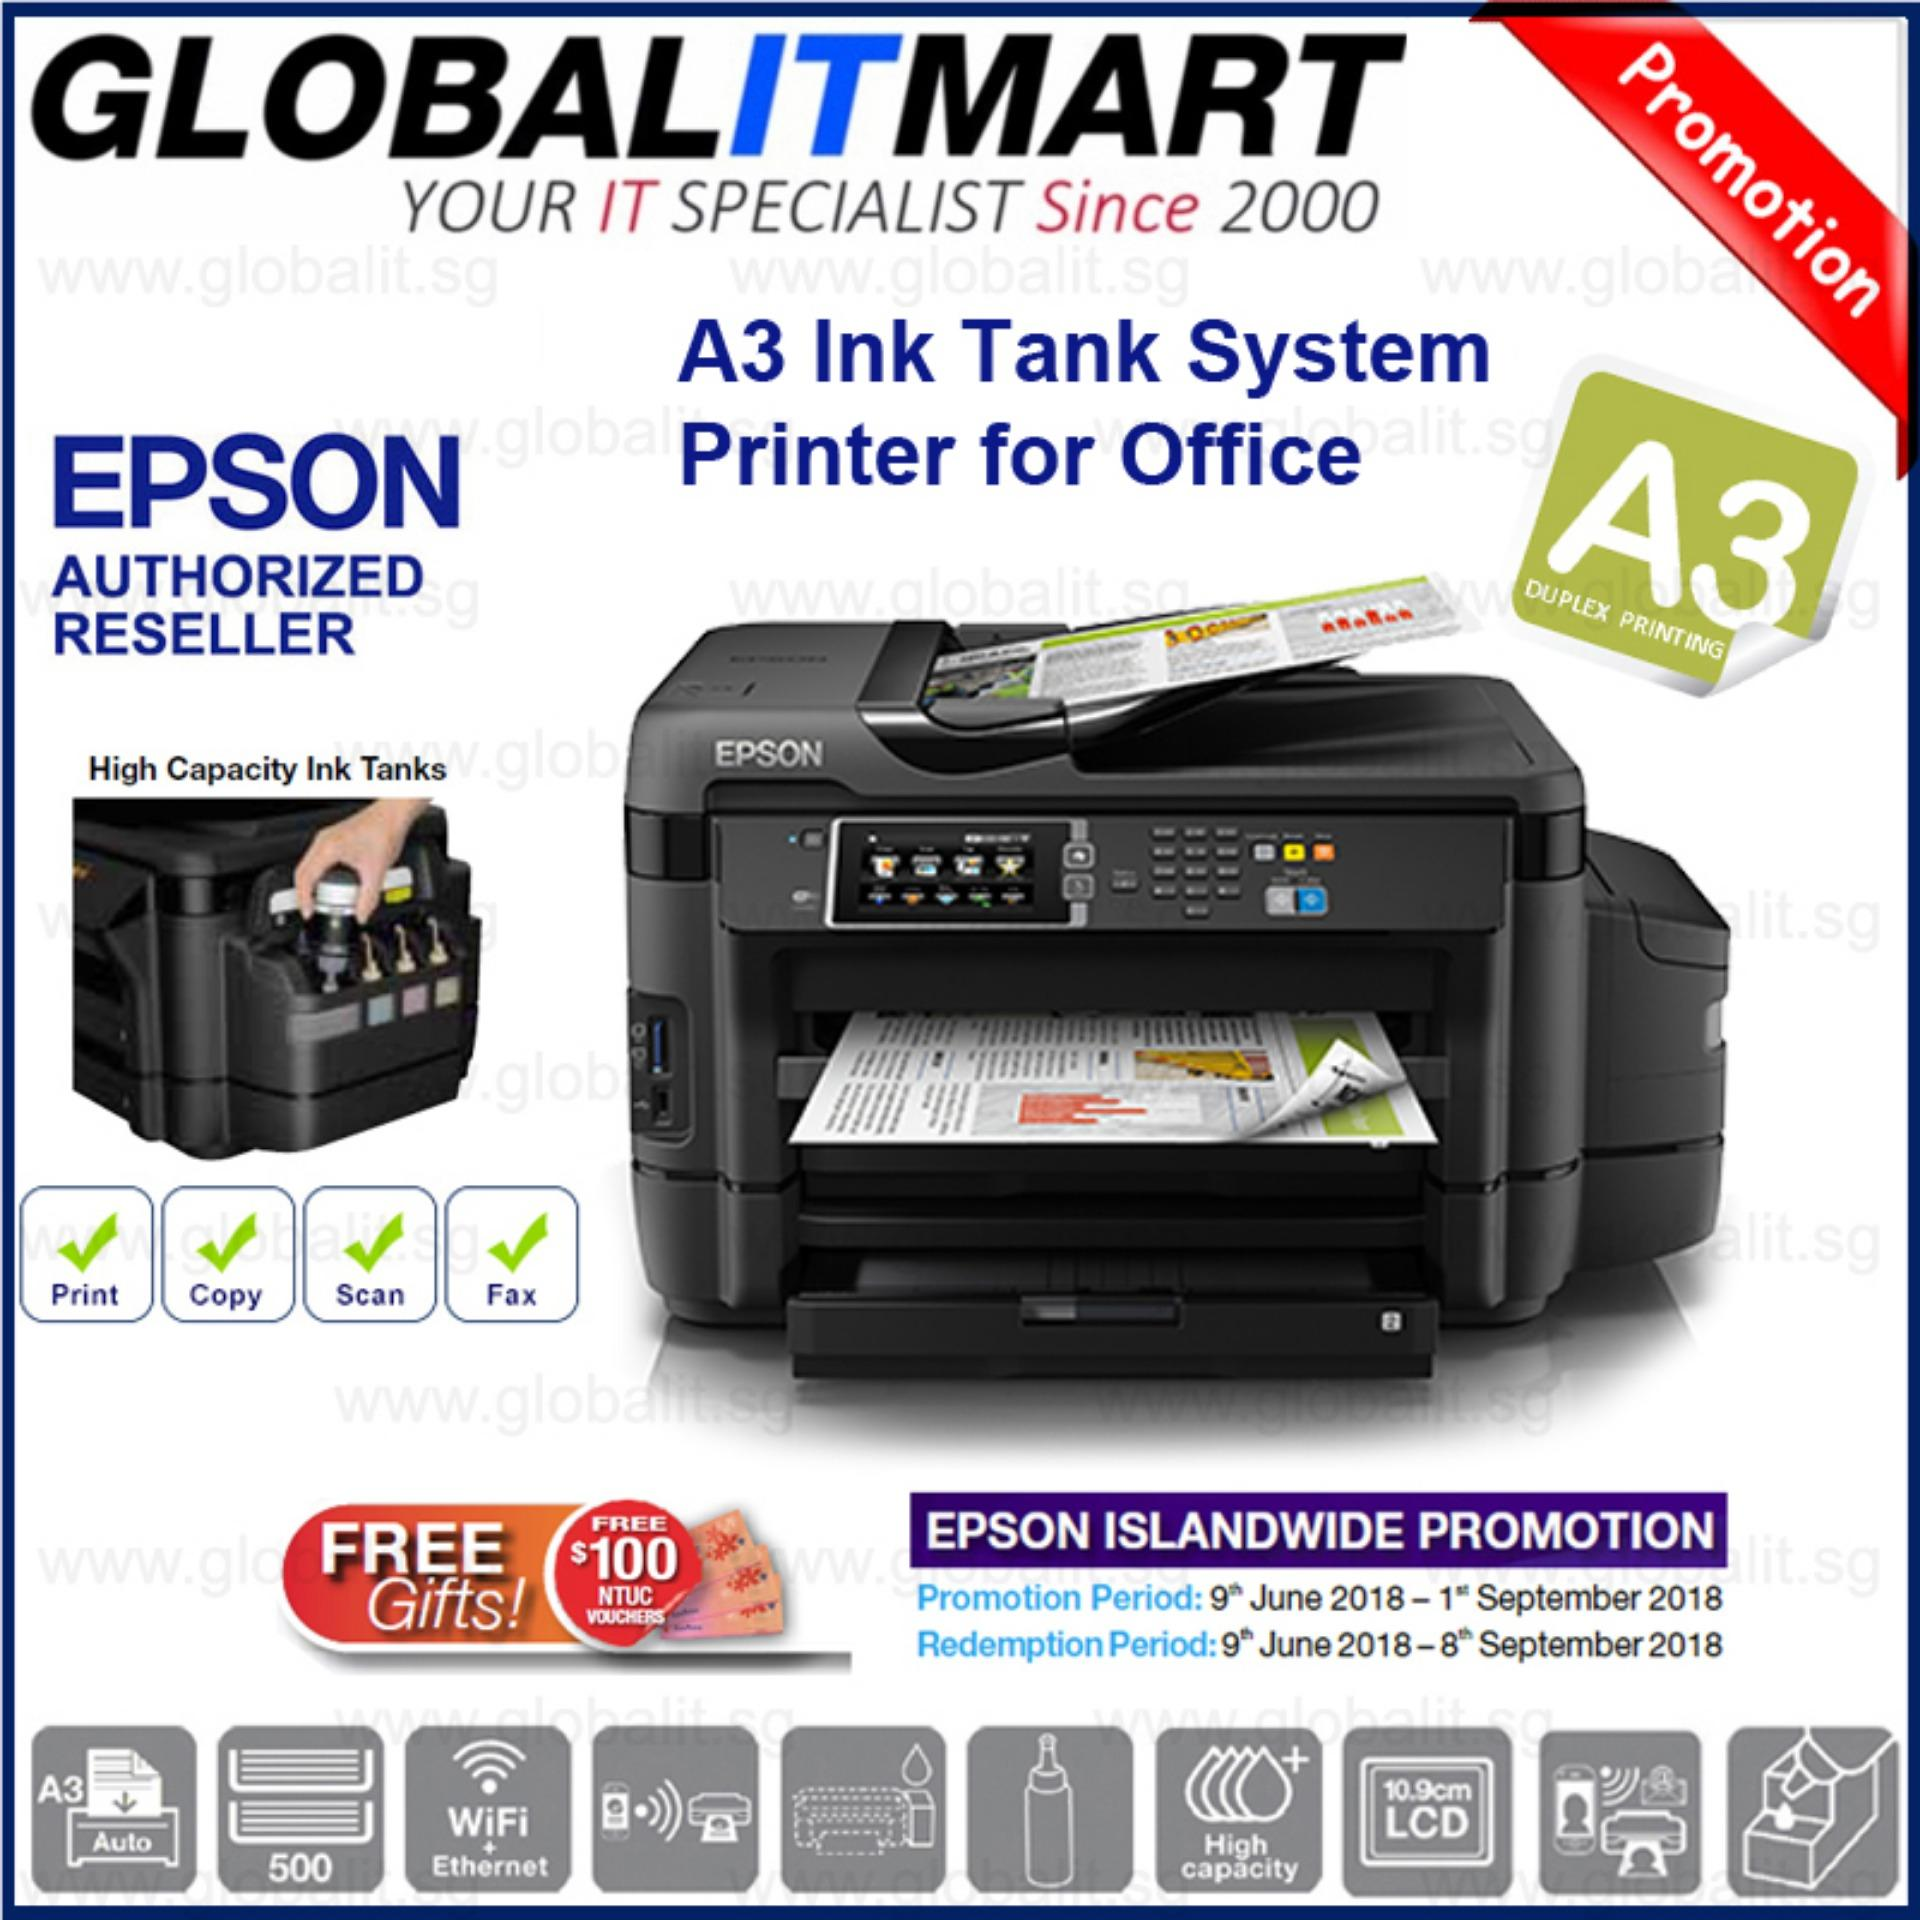 Epson L1455 A3 Duplex 4-IN-1 Ink Tank System Printer Singapore